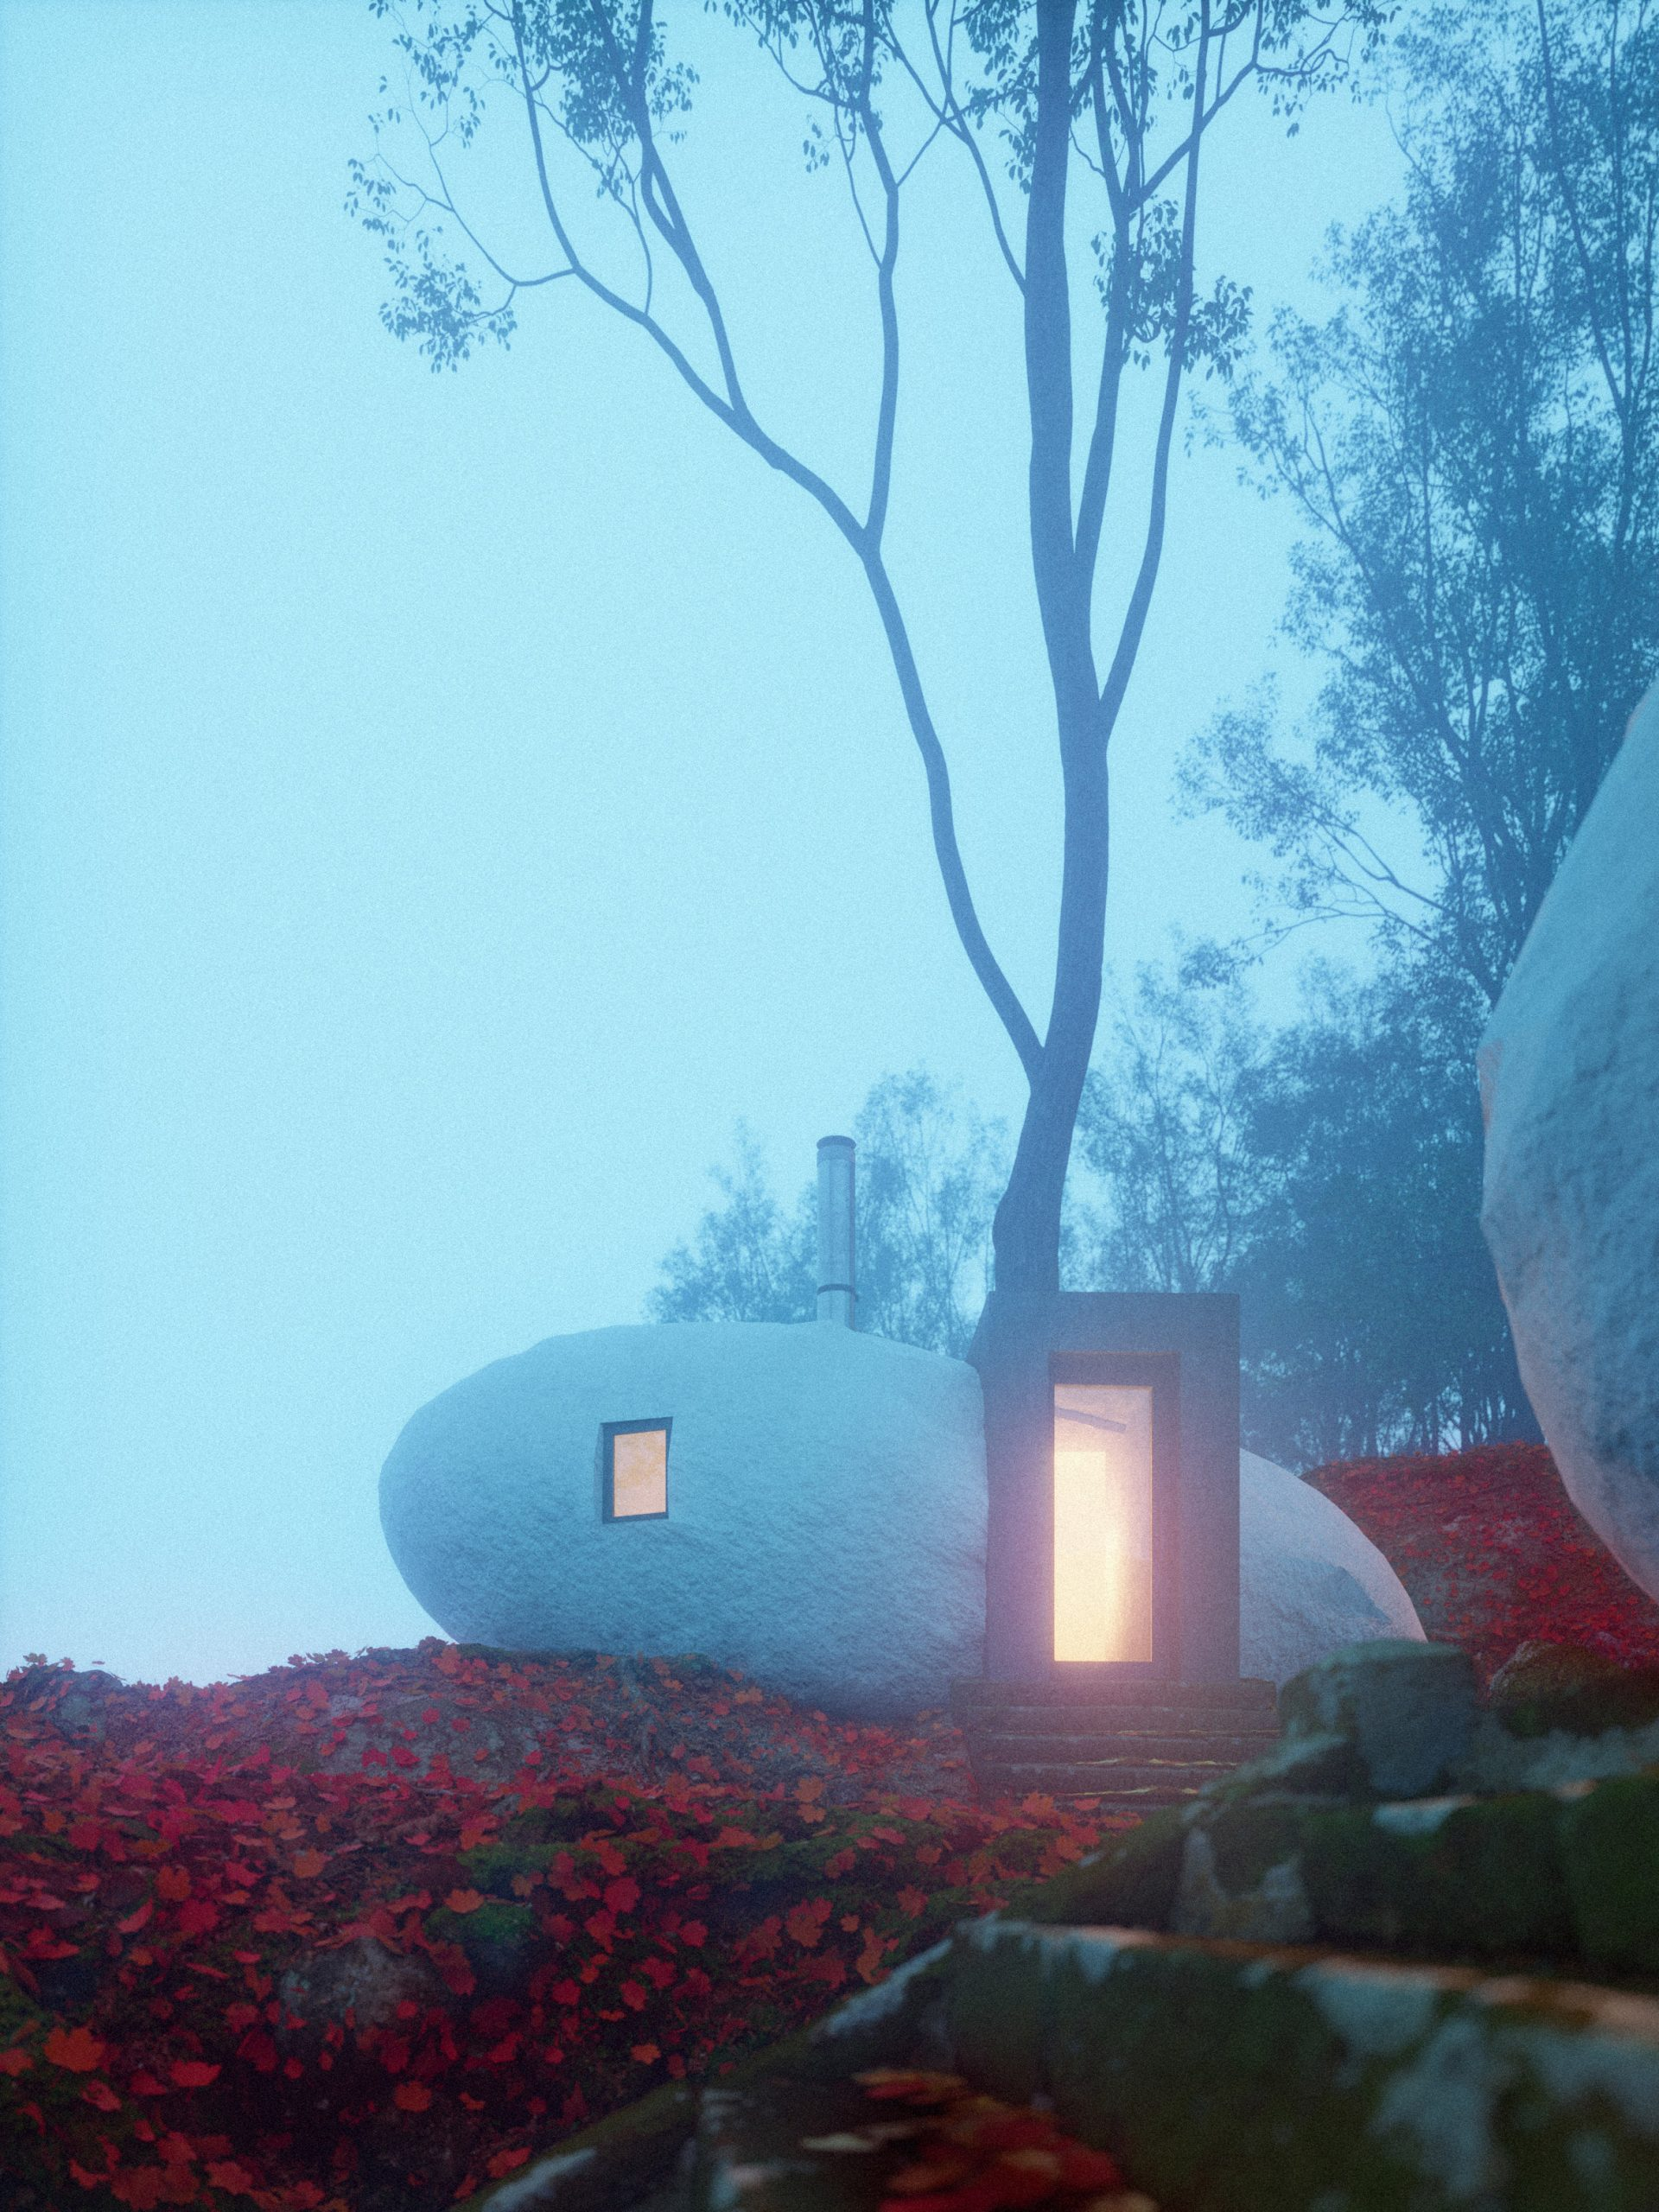 Renderings of Dolmen Shelter, a fictional hotel with stone-shaped rooms